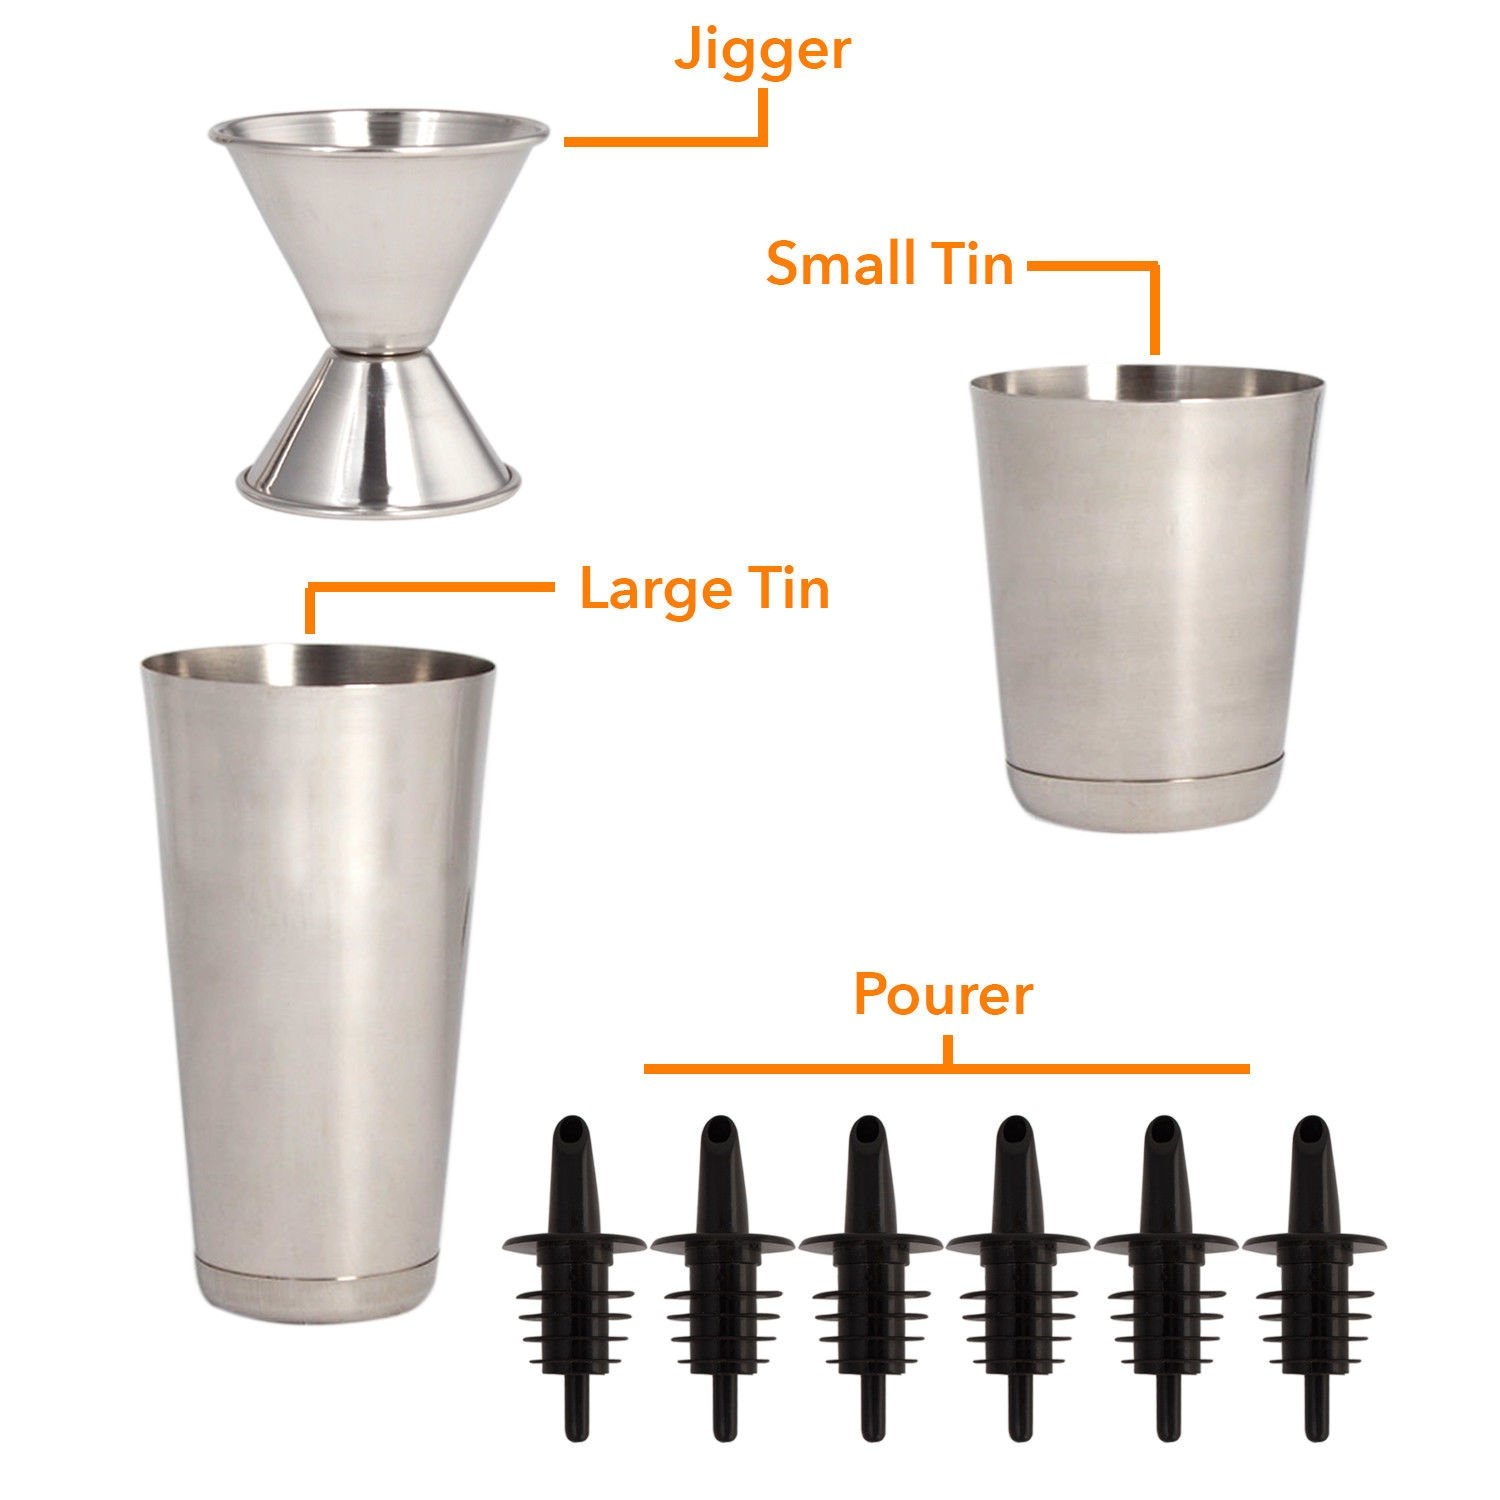 16 Pcs Cocktail Shaker Home Bar Set – Complete Bartender Kit with Double Bar Jigger, Pour Spouts, Drink Shaker, Hawthorne Strainer, Bar Spoon, Bottle Opener and Tin Shot Glasses by Lexi Home (Image #4)